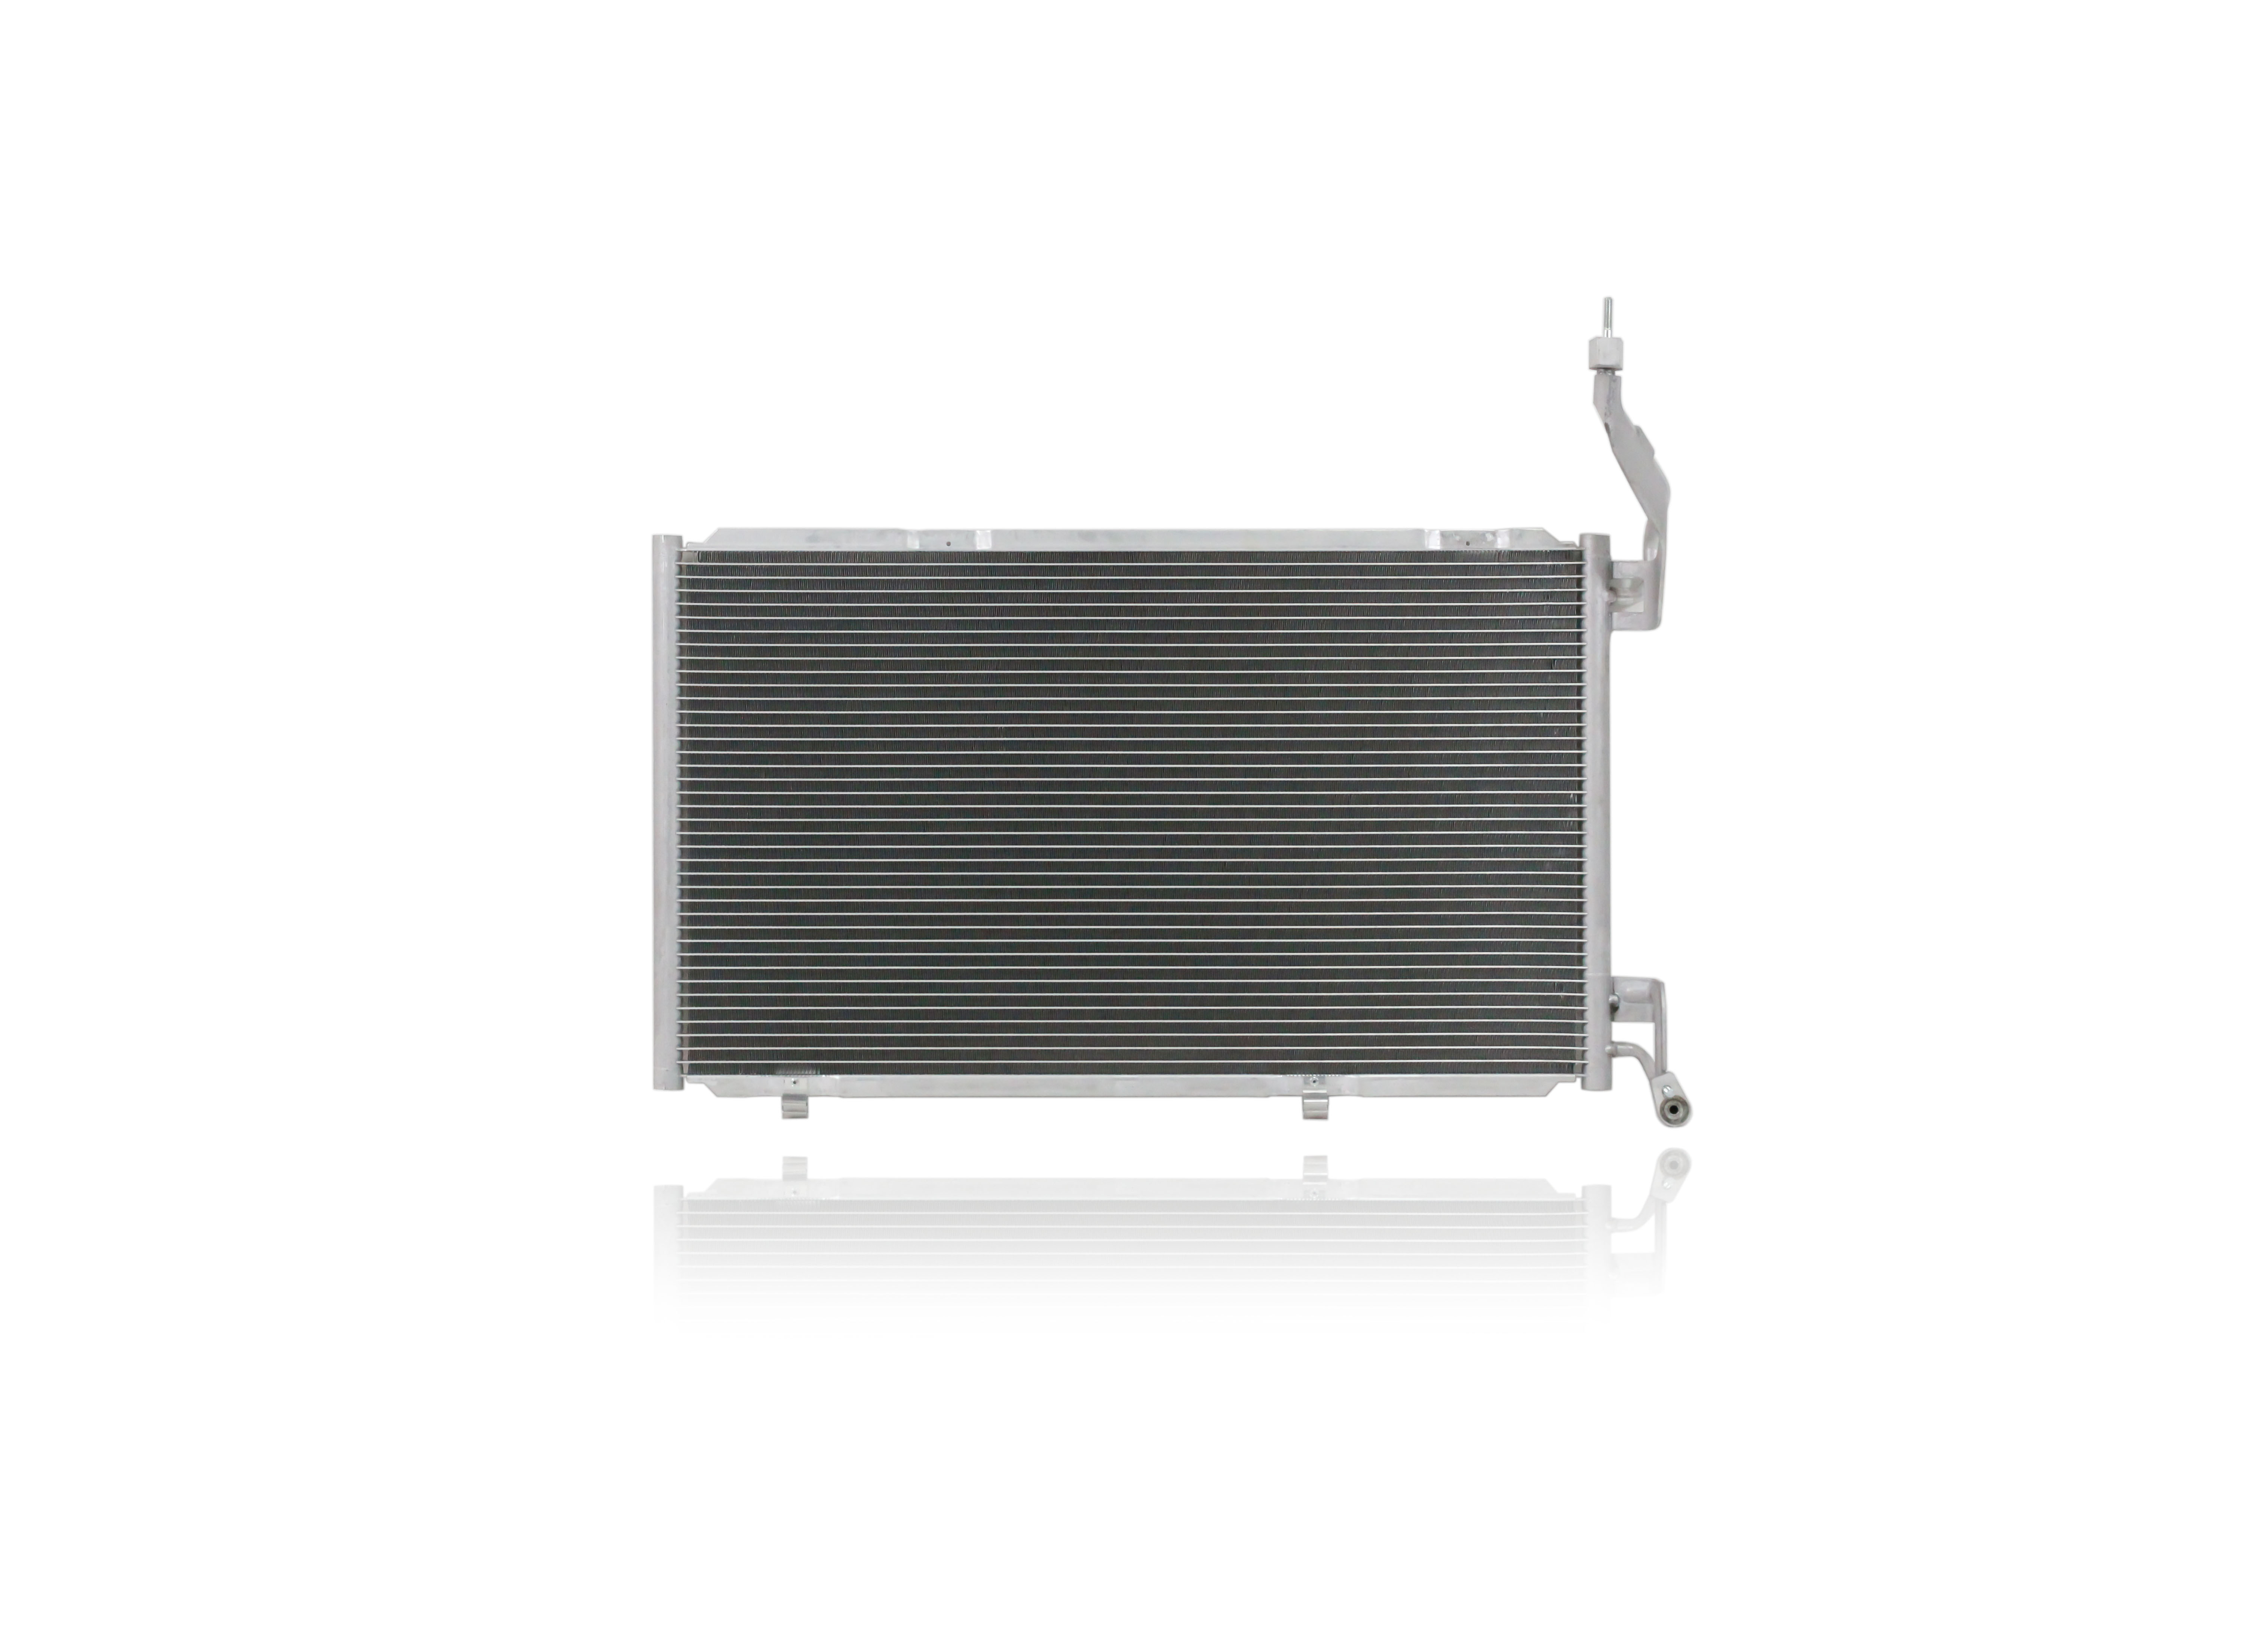 For//Fit 4437 14-18 Ford Fiesta ST Without Receiver /& Dryer PACIFIC BEST INC A-C Condenser